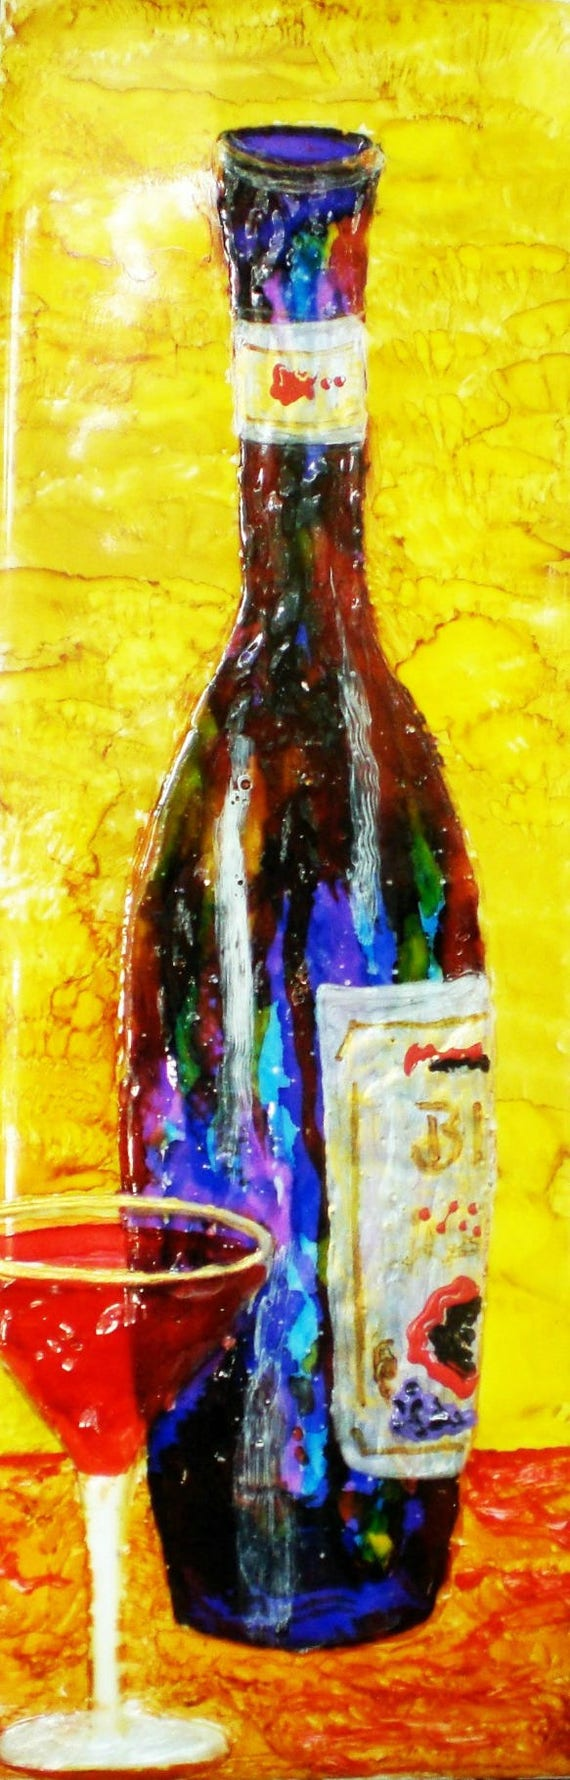 Famous Bottle Wall Art Ideas - Art & Wall Decor - hecatalog.info